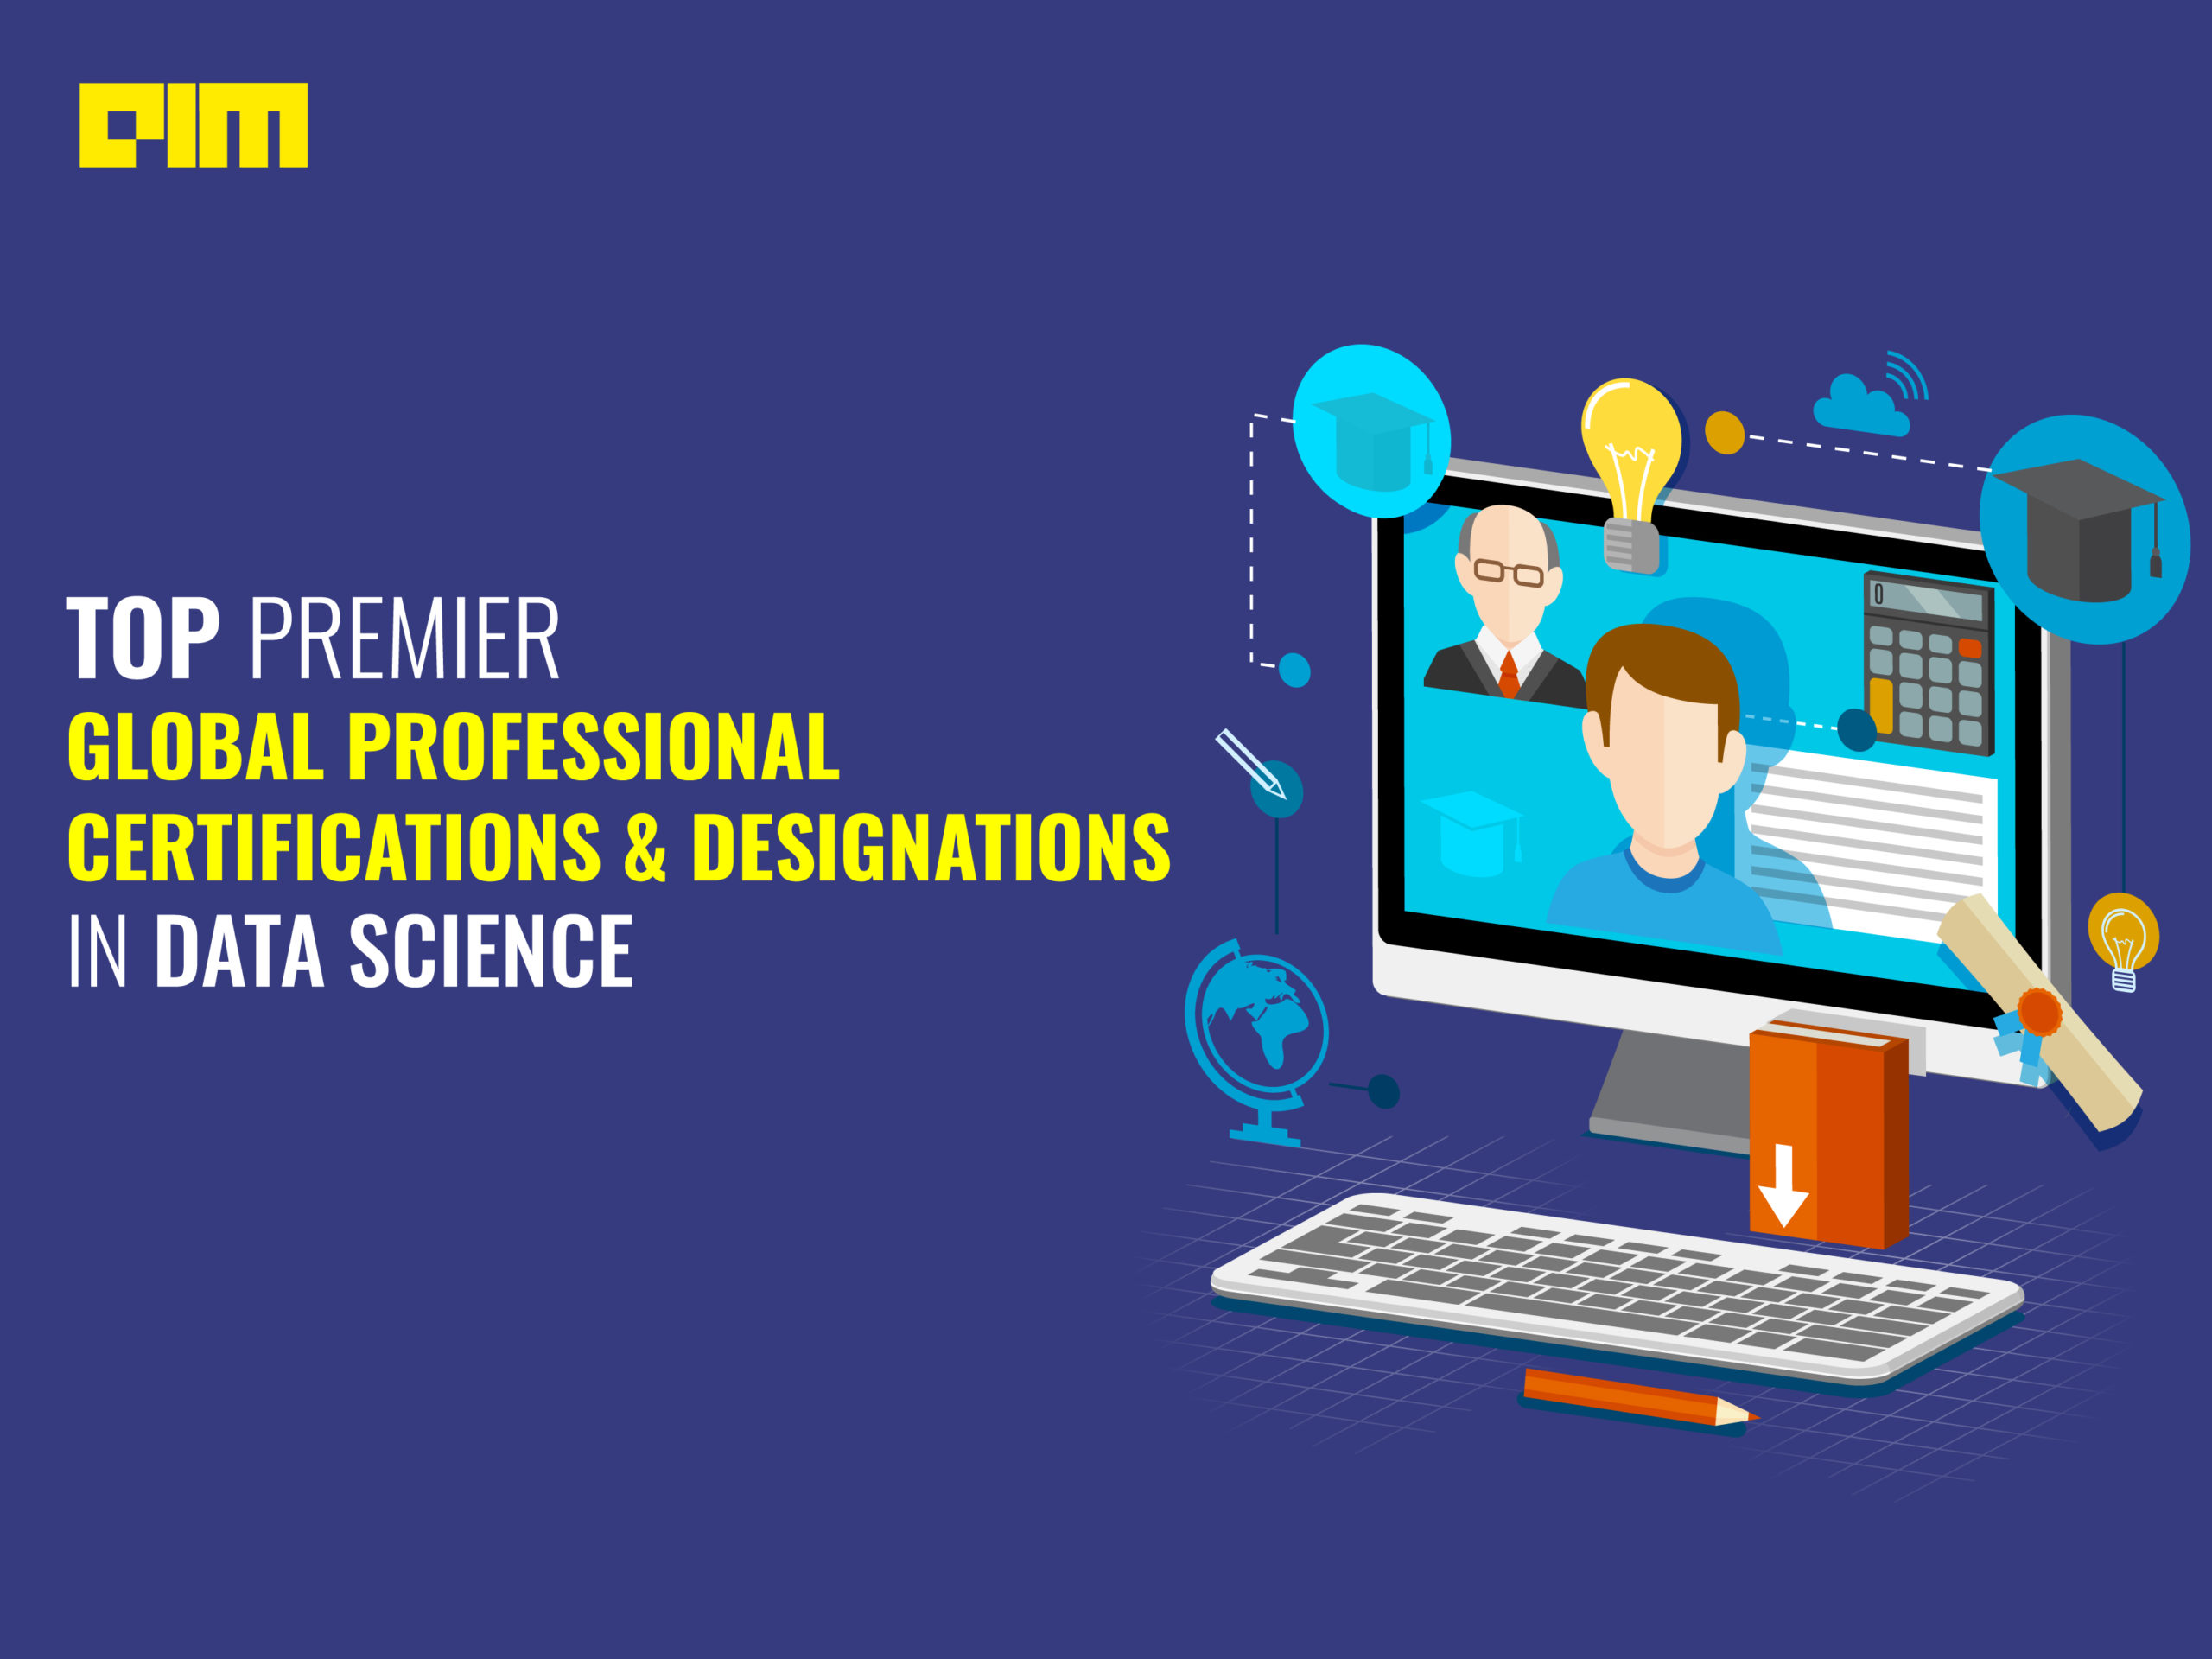 certifications in data science; data science certification; Top Premier Global Professional Certifications & Designations In Data Science